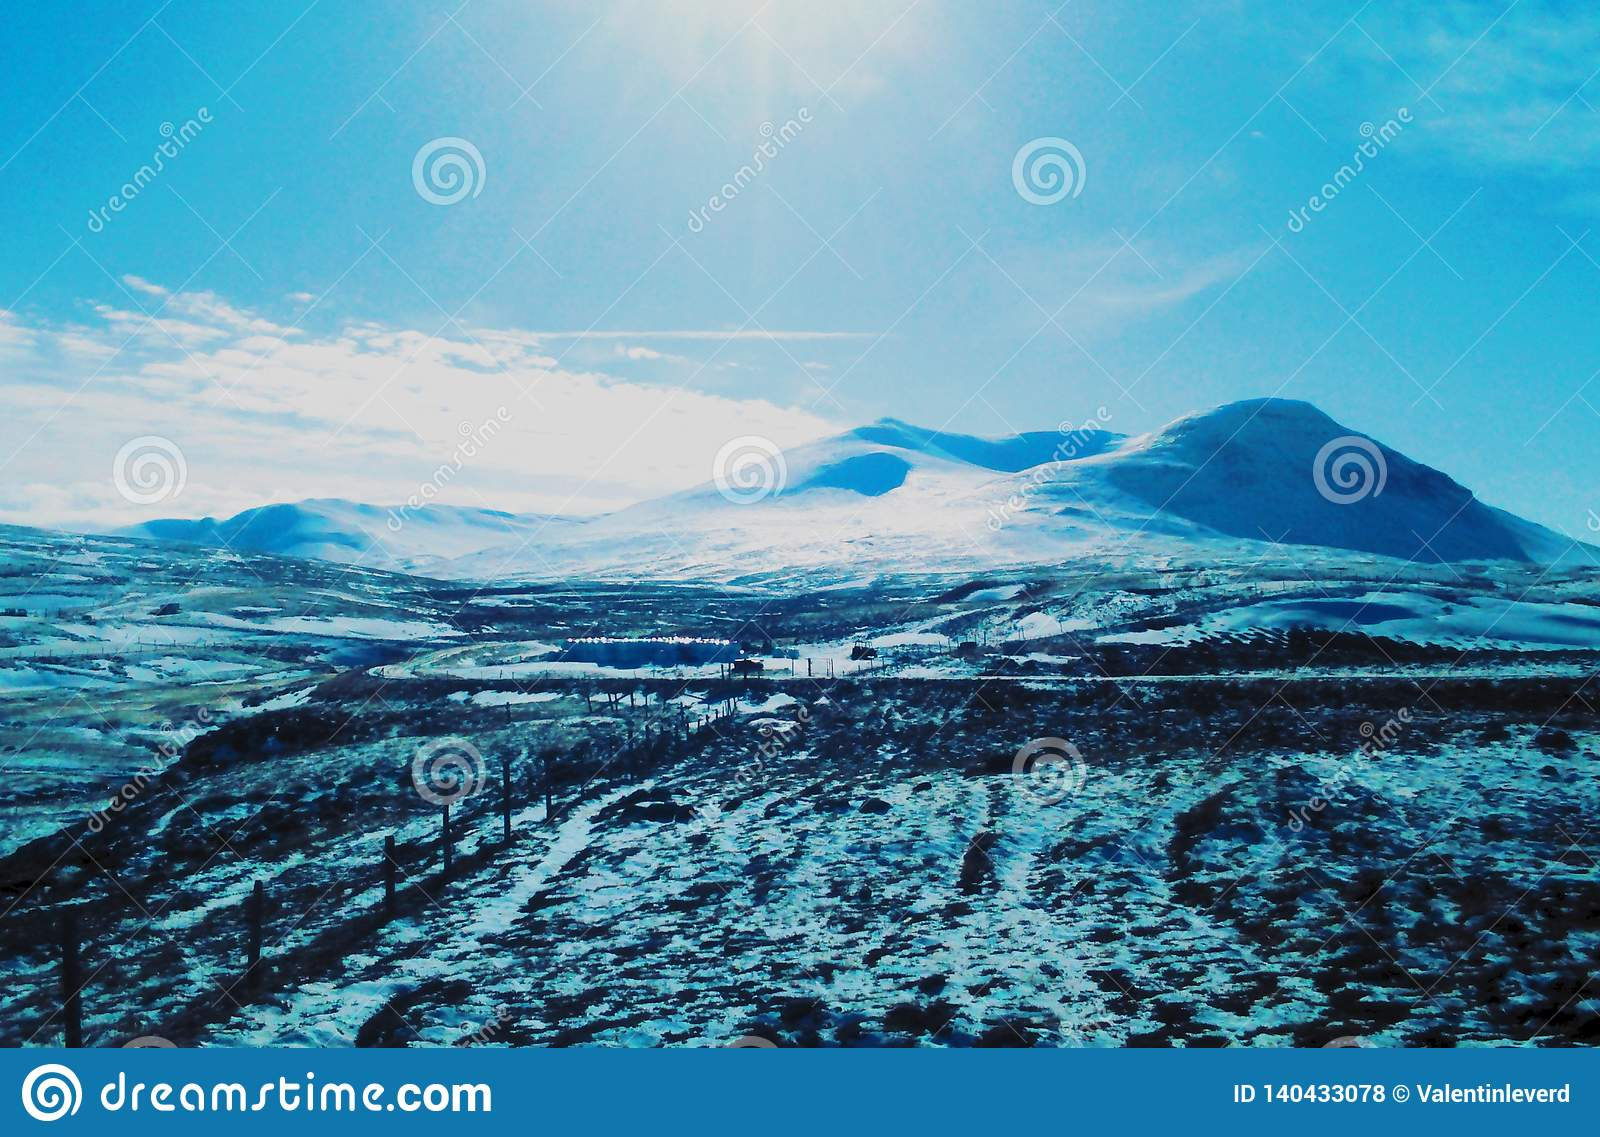 Snowing field with blue sky